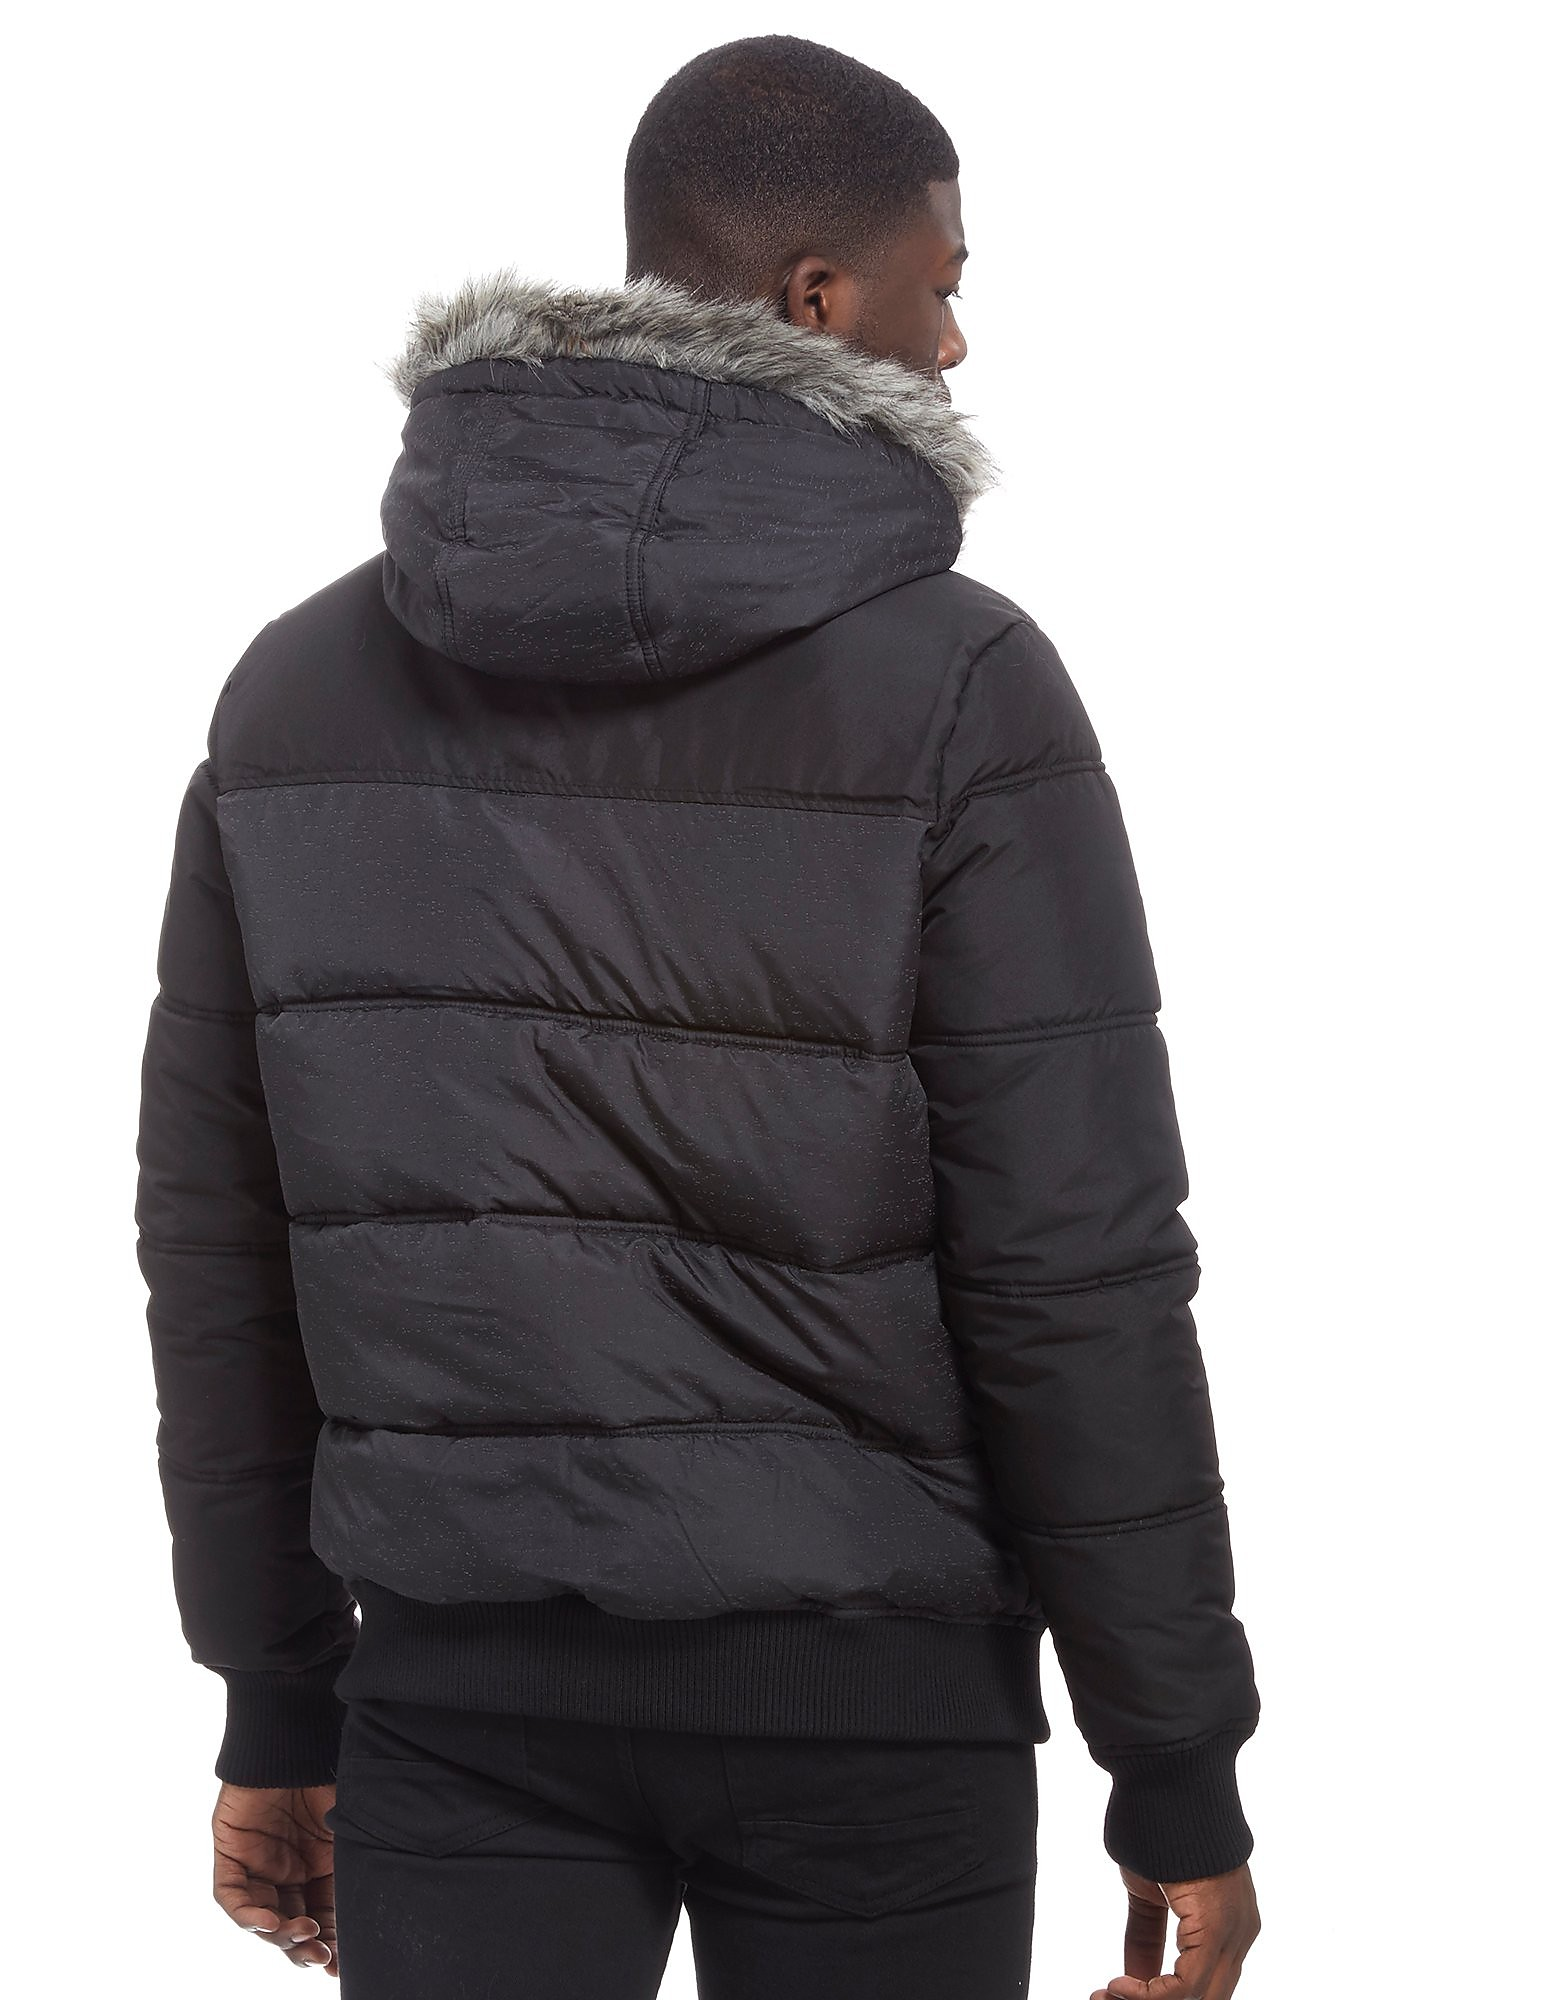 McKenzie Apollo Jacket